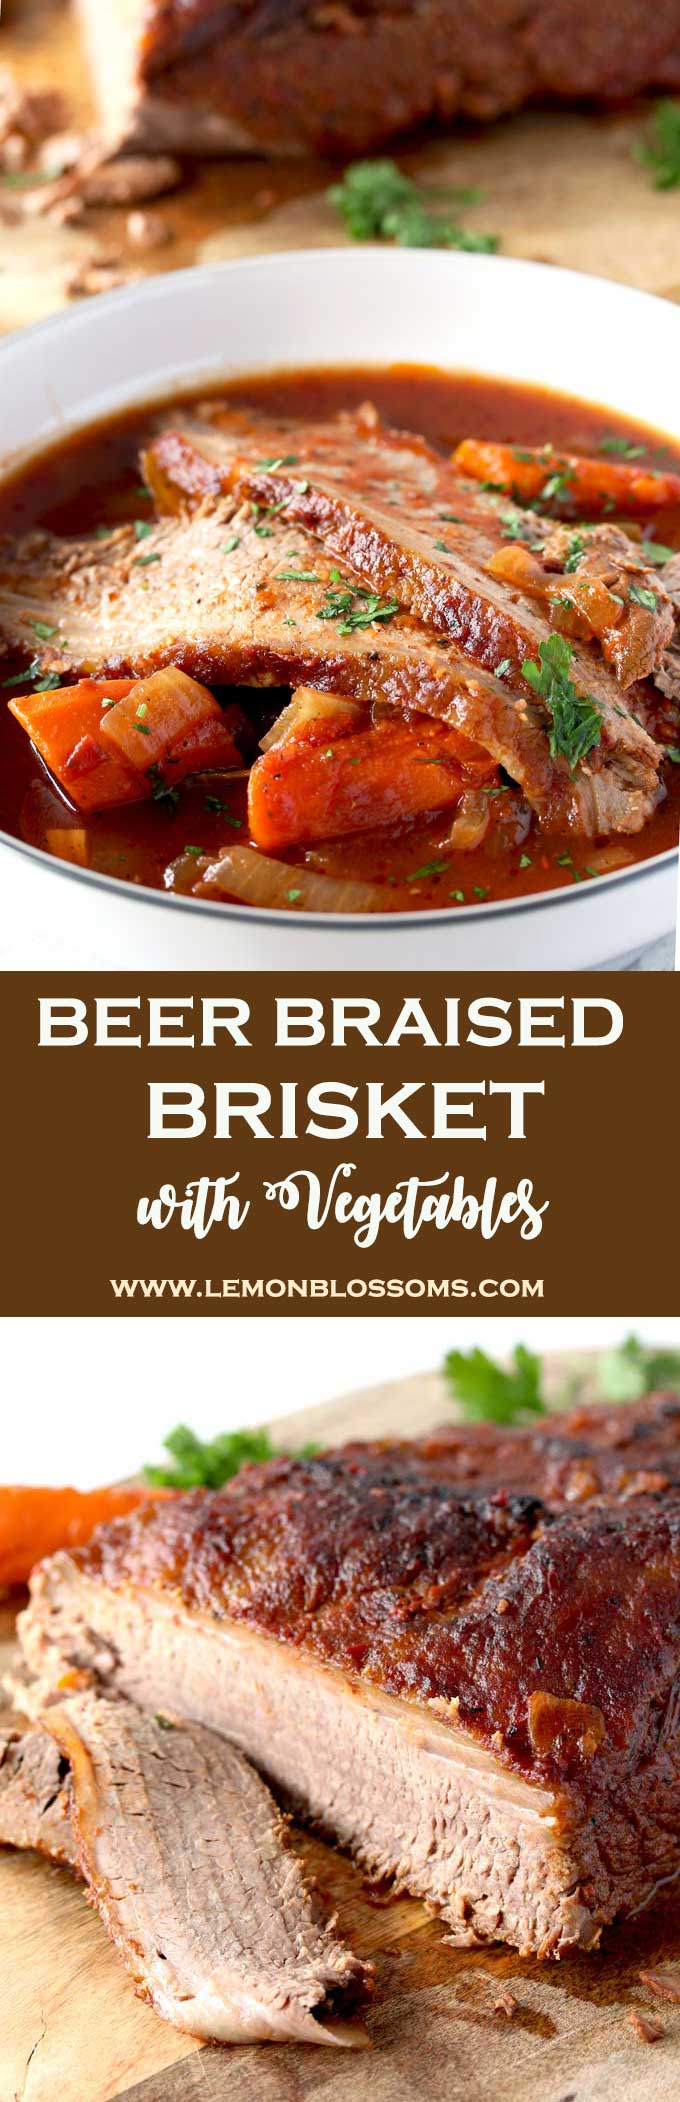 This incredibly tender Beer Braised Brisket with Vegetables is richly flavored, succulent and delicious. Cooked low and slow in beer and crushed tomatoes until mouthwatering perfection. With onions and carrots this is the perfect make ahead dinner party dish!